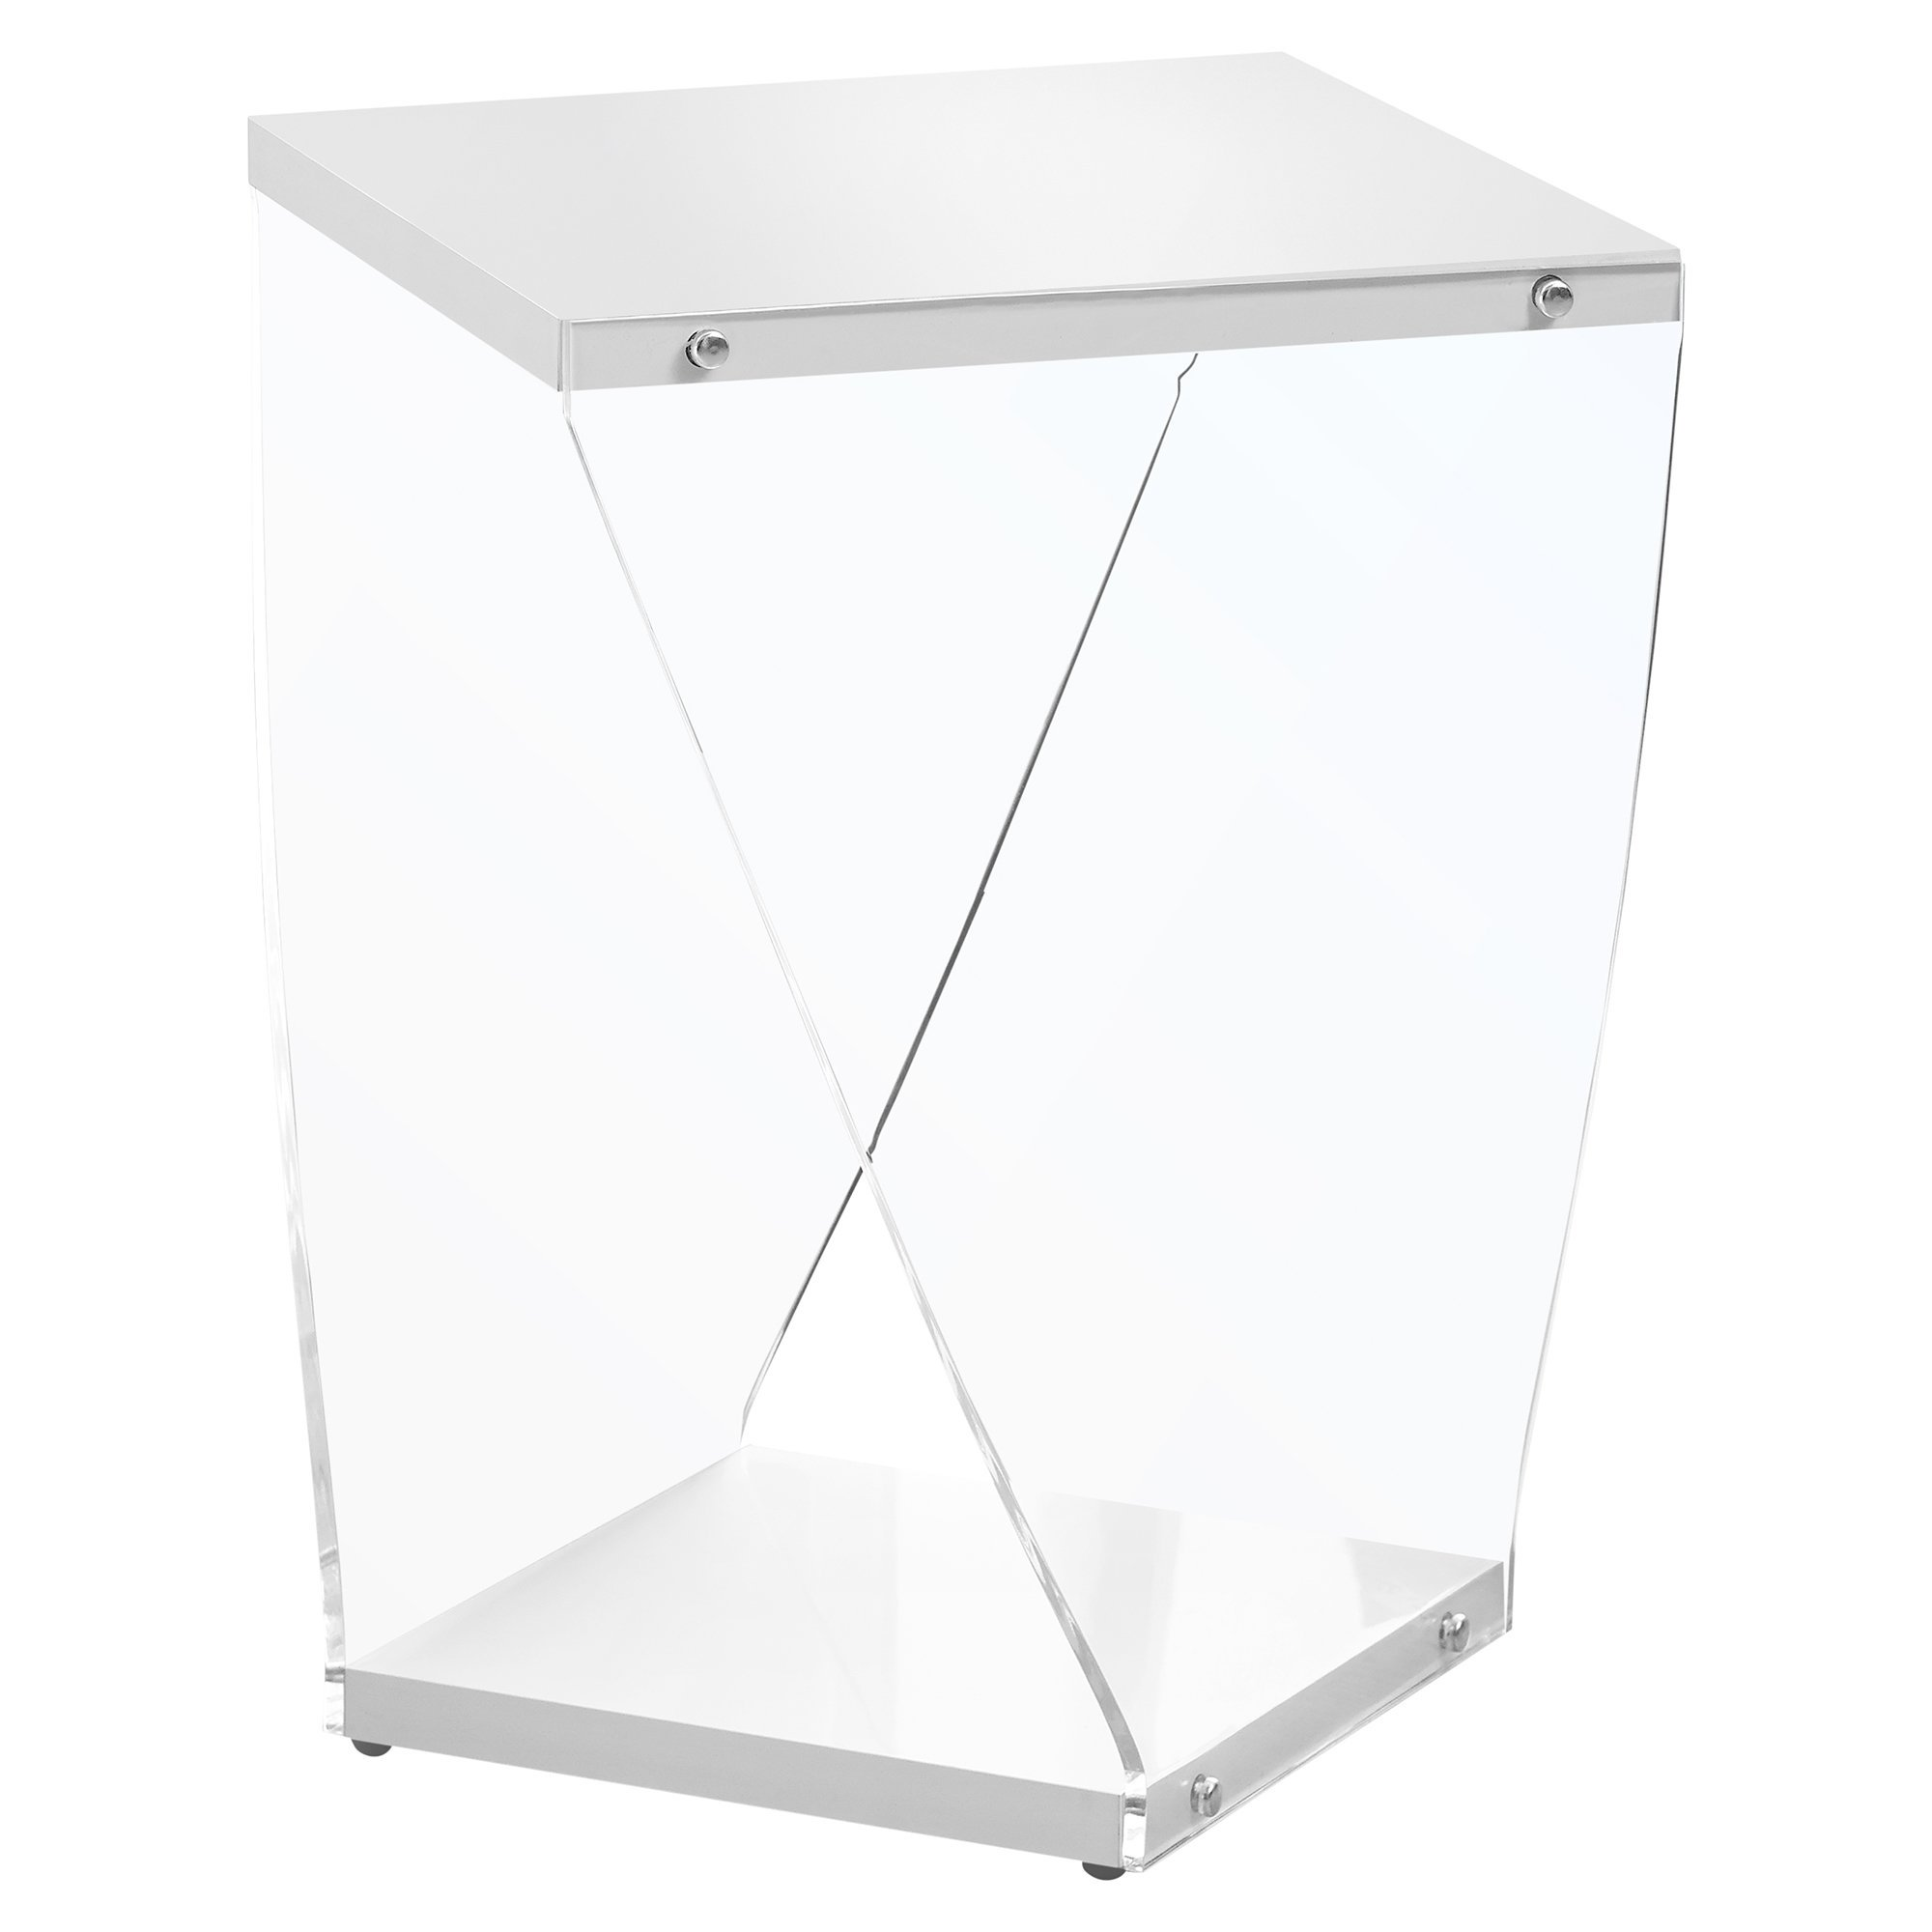 monarch mdf and acrylic accent table white clear finish unfinished wood side nautical bedside lamps lucite night coffee metal glass patio with umbrella hole hampton bay winter